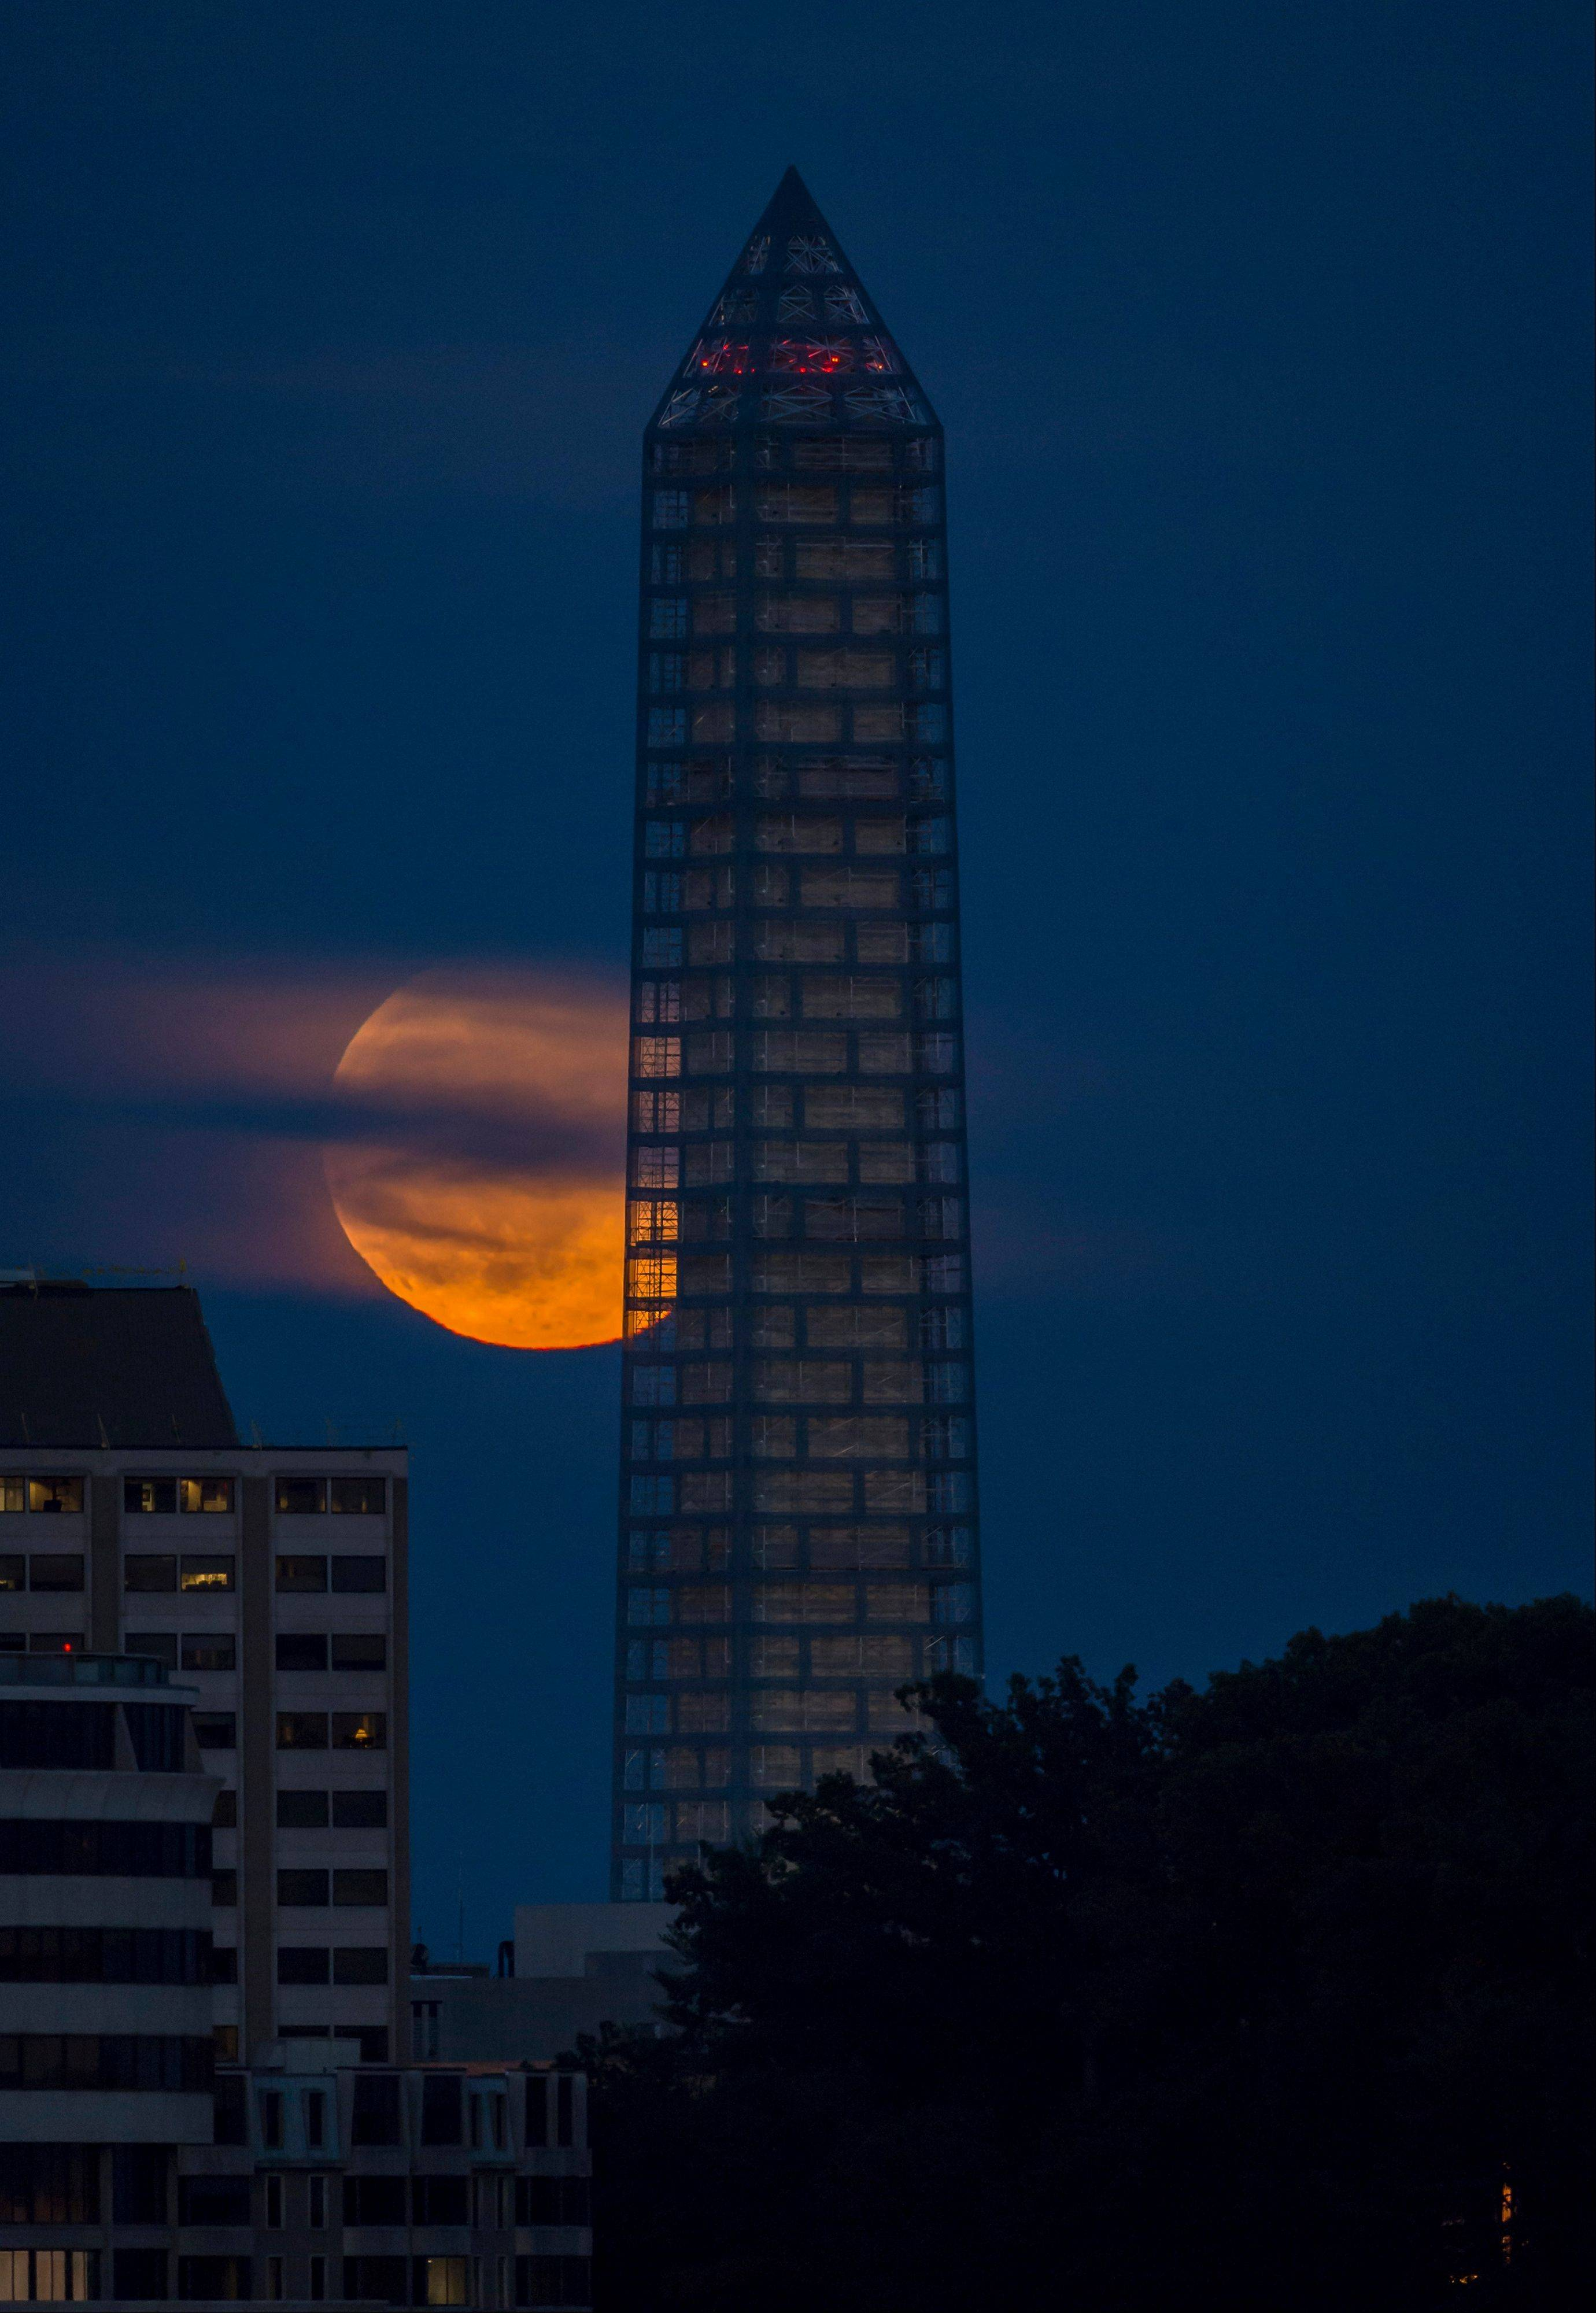 The moon rises behind the Washington Monument, Sunday, June 23, 2013, in Washington. The so-called supermoon appeared up to 14 percent larger than normal as our celestial neighbor swung closer to Earth, reaching its closest distance early Sunday morning.